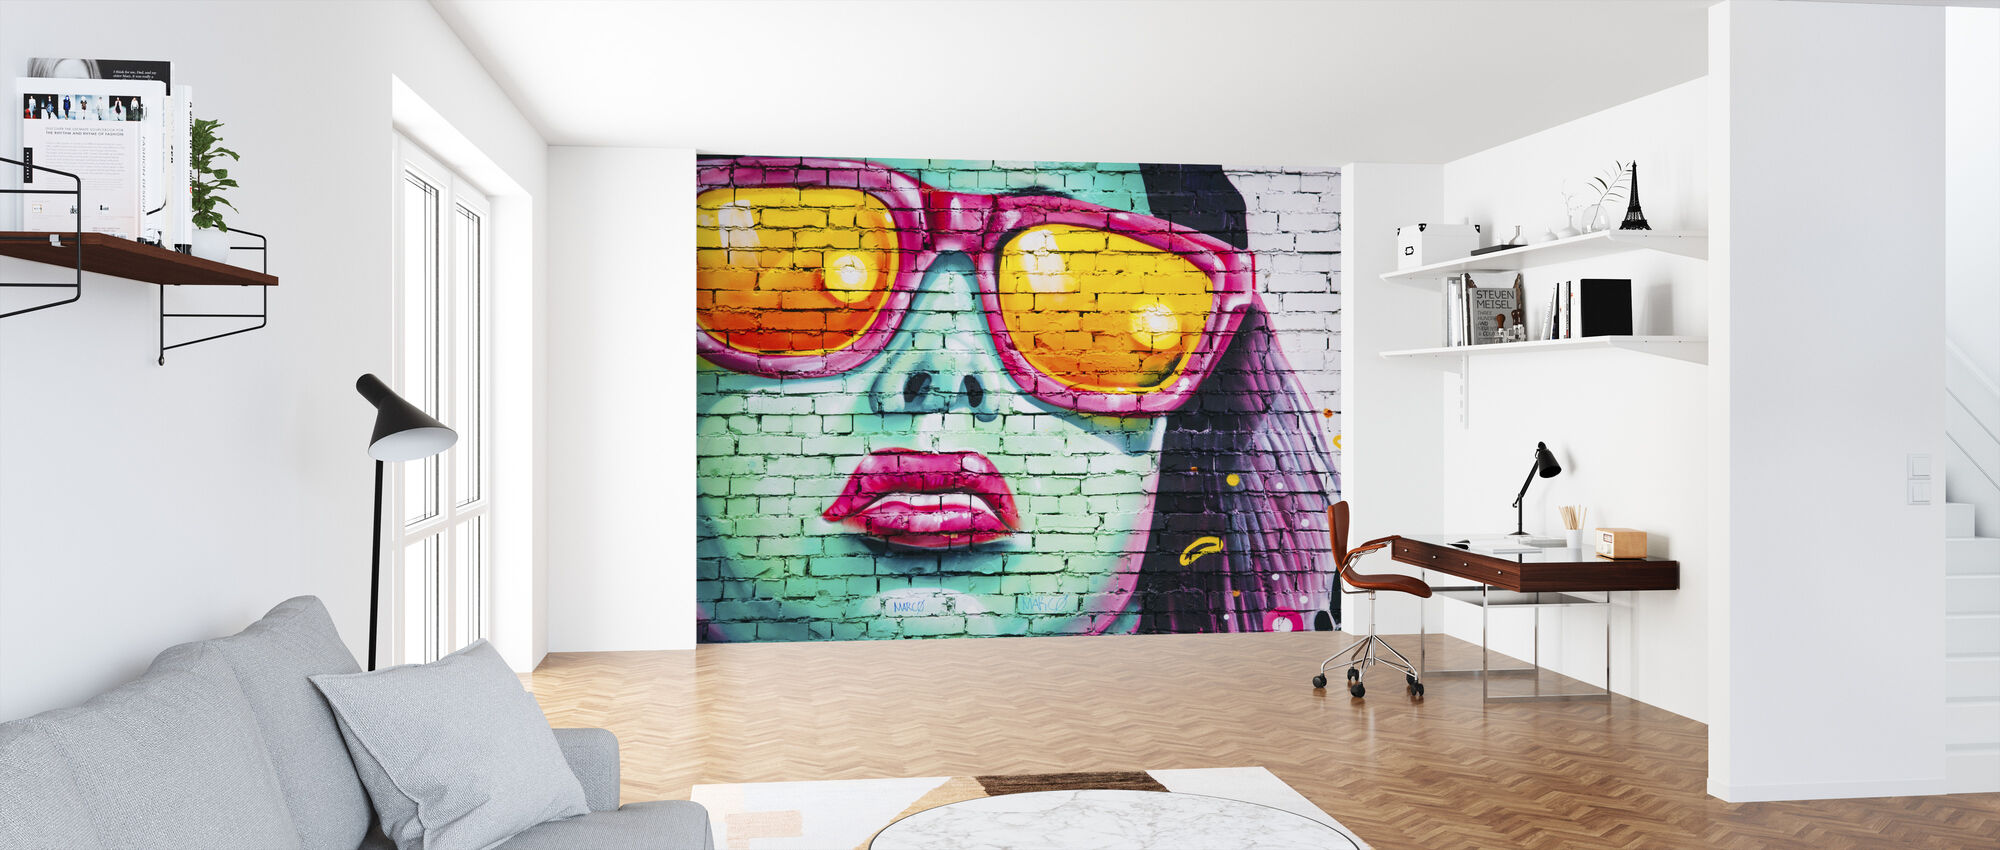 Mural of Woman's Face - Wallpaper - Office